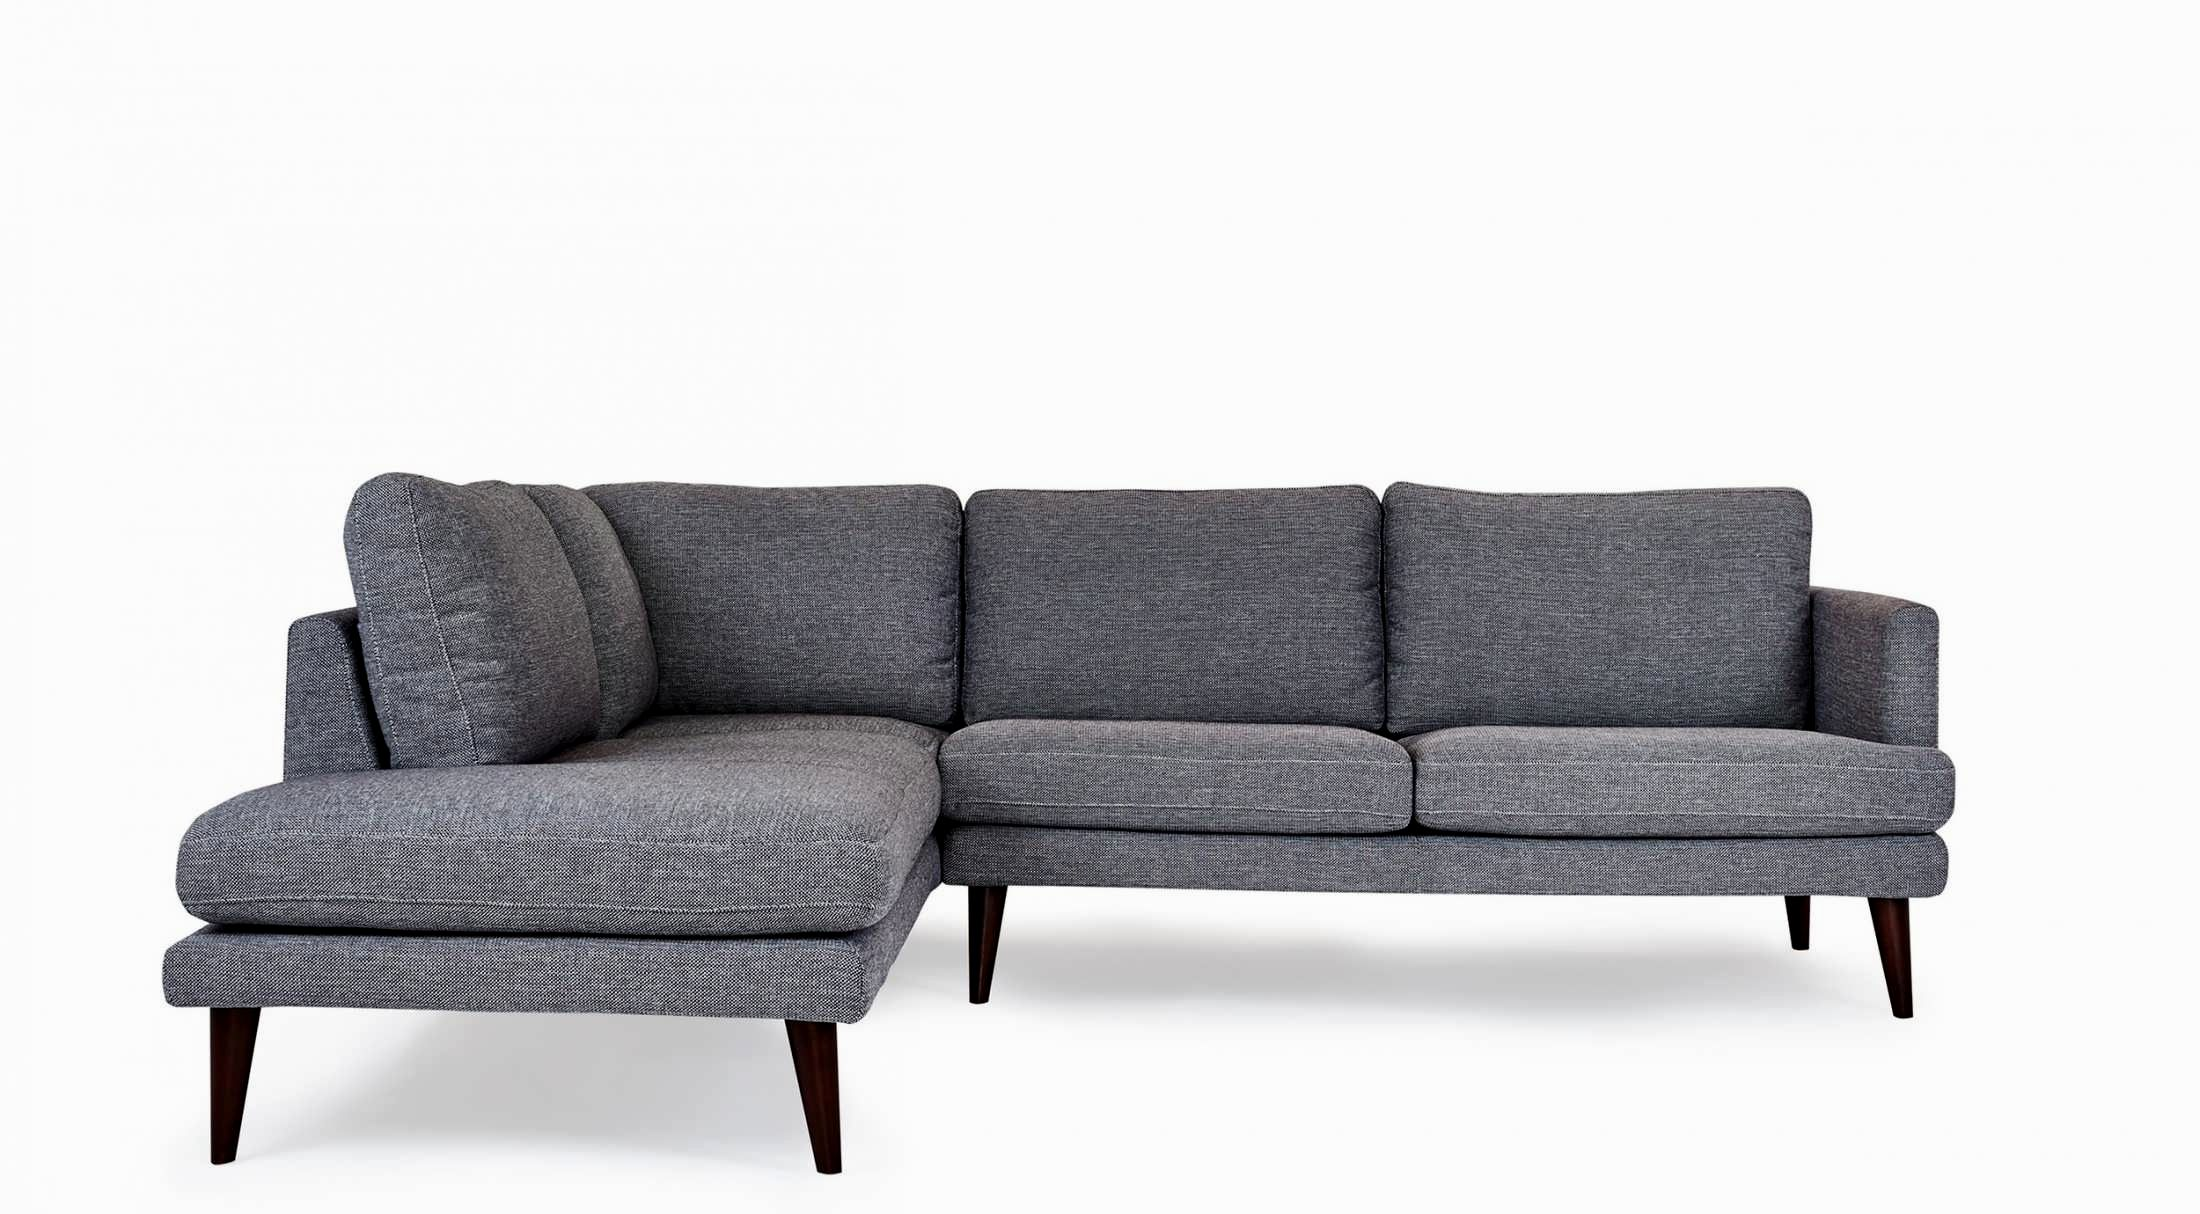 terrific cheap sofa beds model-Best Cheap sofa Beds Plan